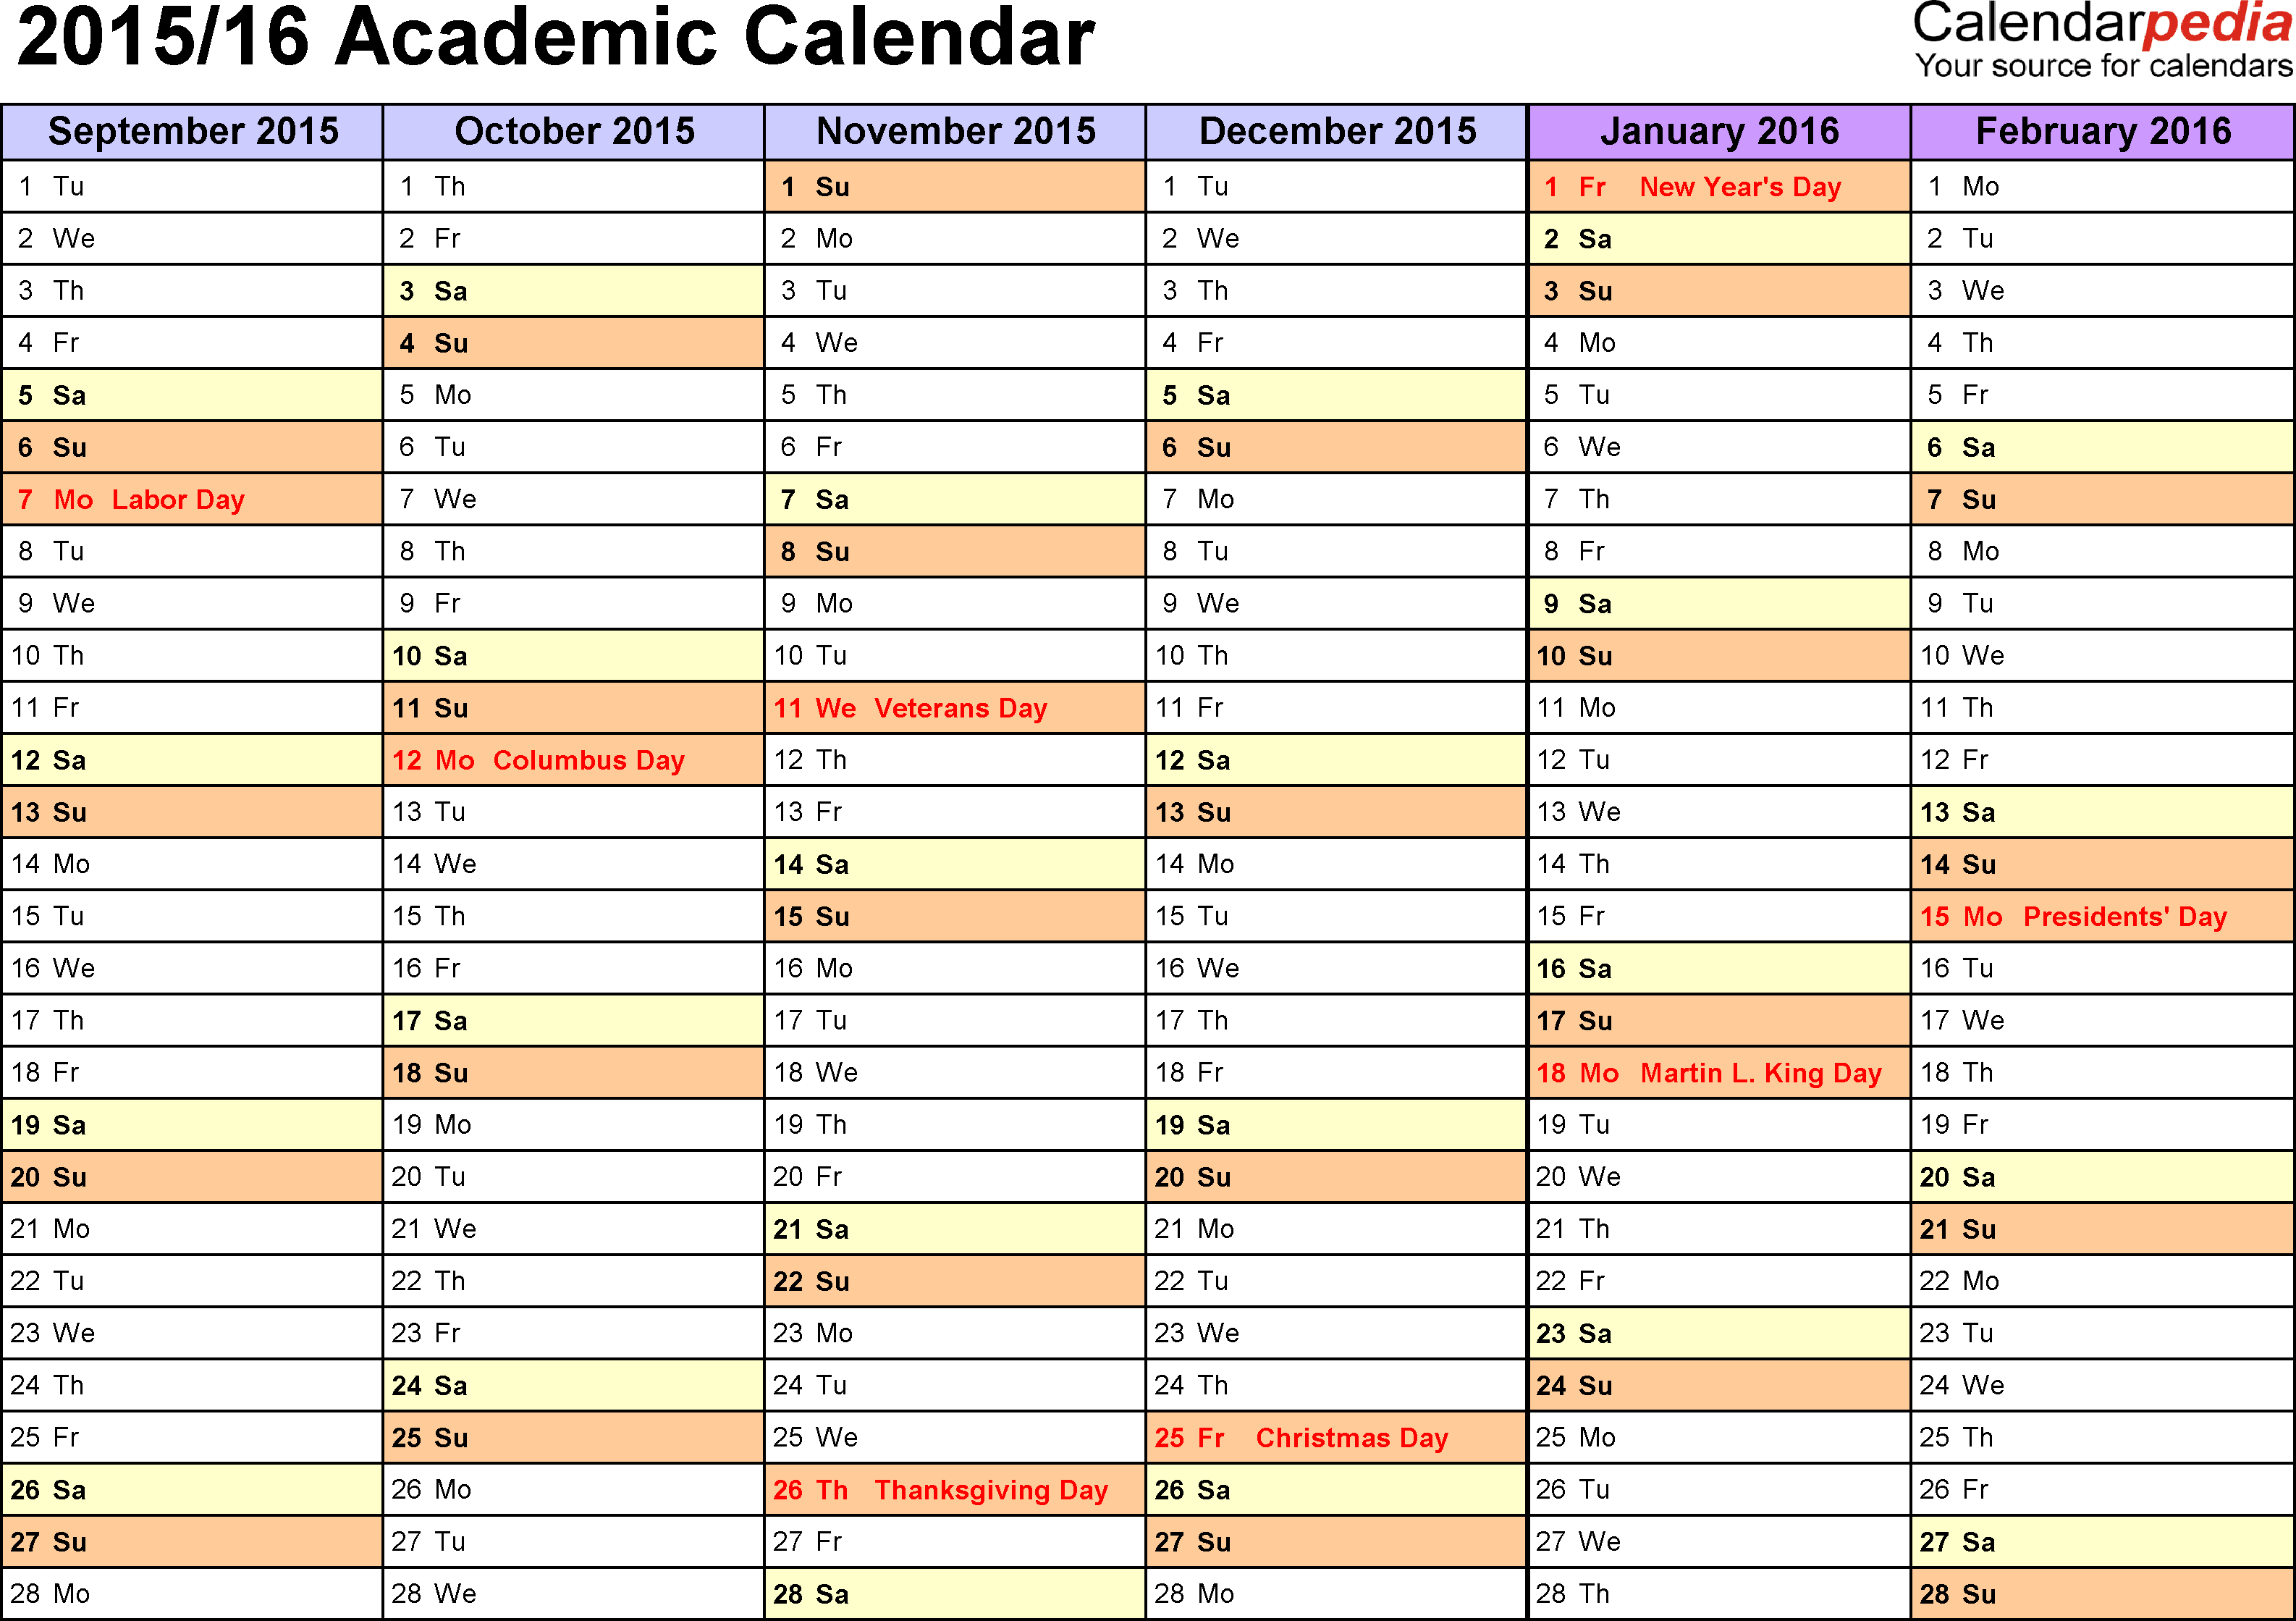 Template 2: Academic calendar 2015/16 for Excel, landscape orientation, months horizontally, 2 pages